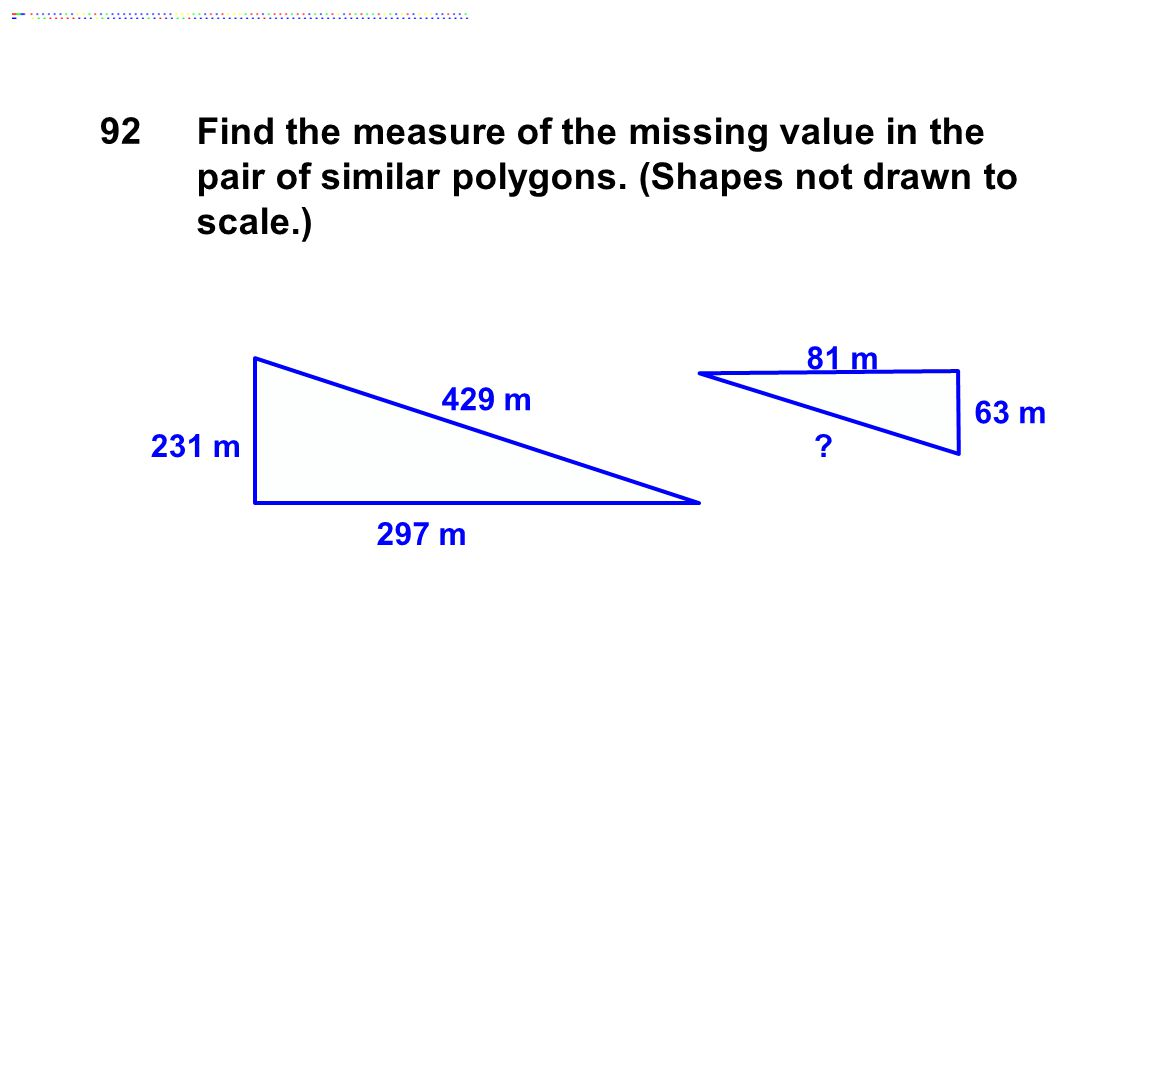 297 m 81 m 231 m 63 m ? 429 m Find the measure of the missing value in the pair of similar polygons. (Shapes not drawn to scale.) 92